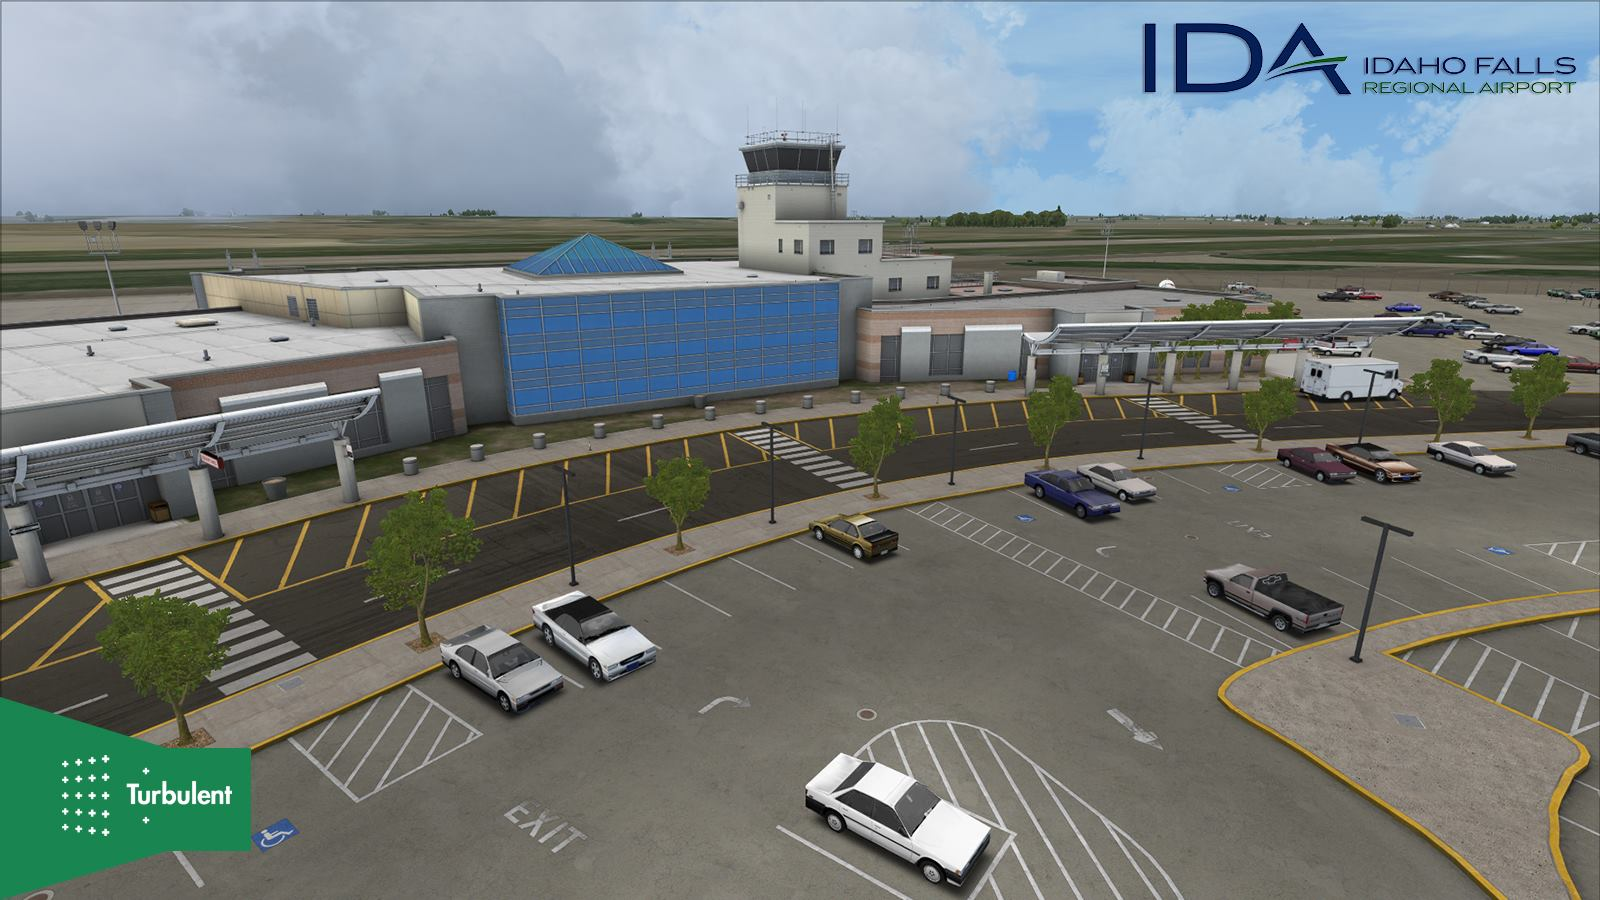 After MBS International release, the current scenery project at Turbulent Designs is KIDA Idaho Falls Regional airport.